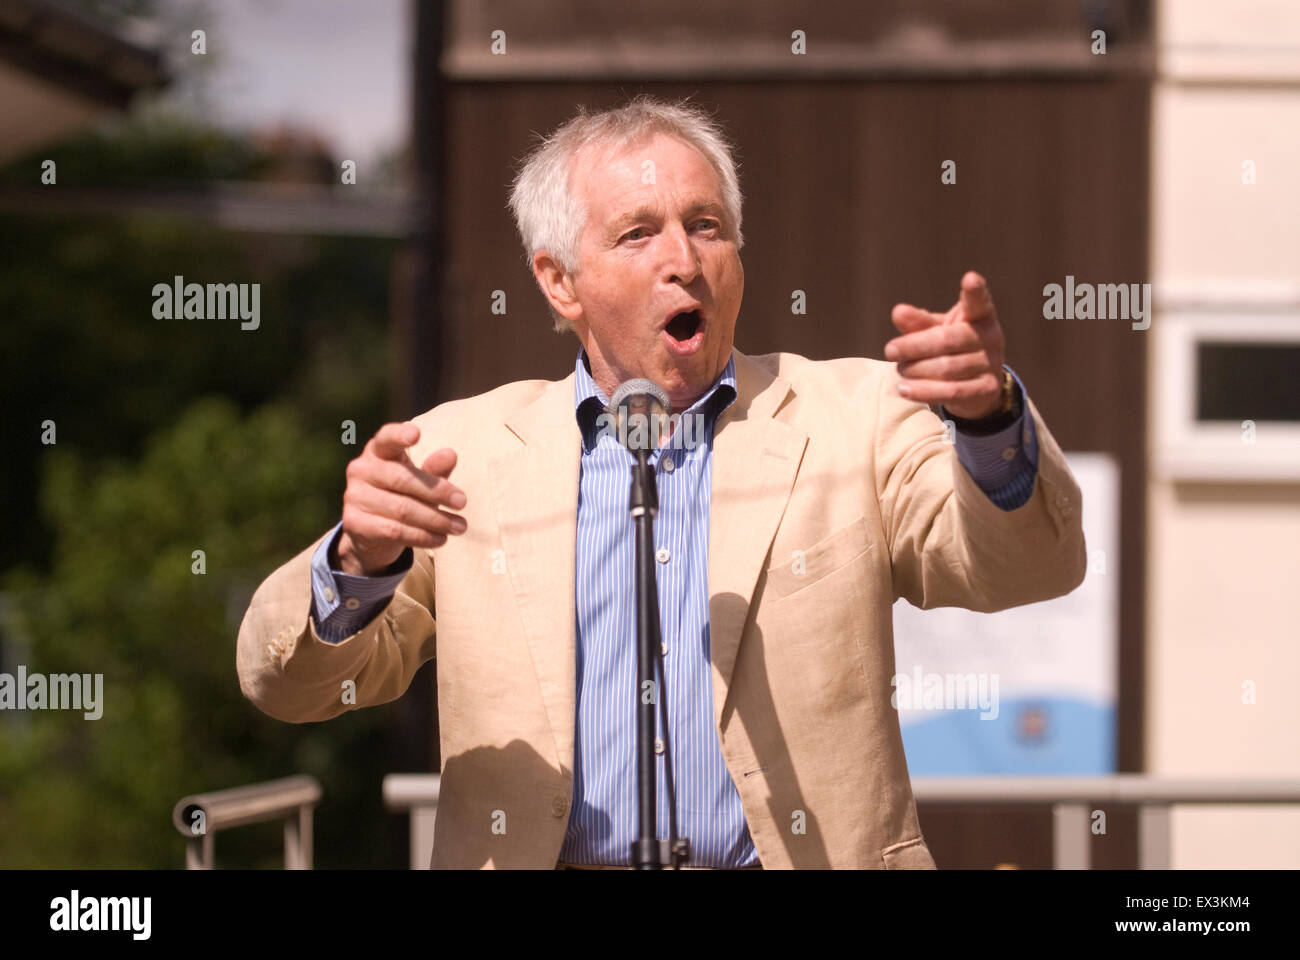 BBC Broadcaster Jonathan Dimbleby (b. 31 July 1944) delivering a speech to parents and pupils at the opening of - Stock Image